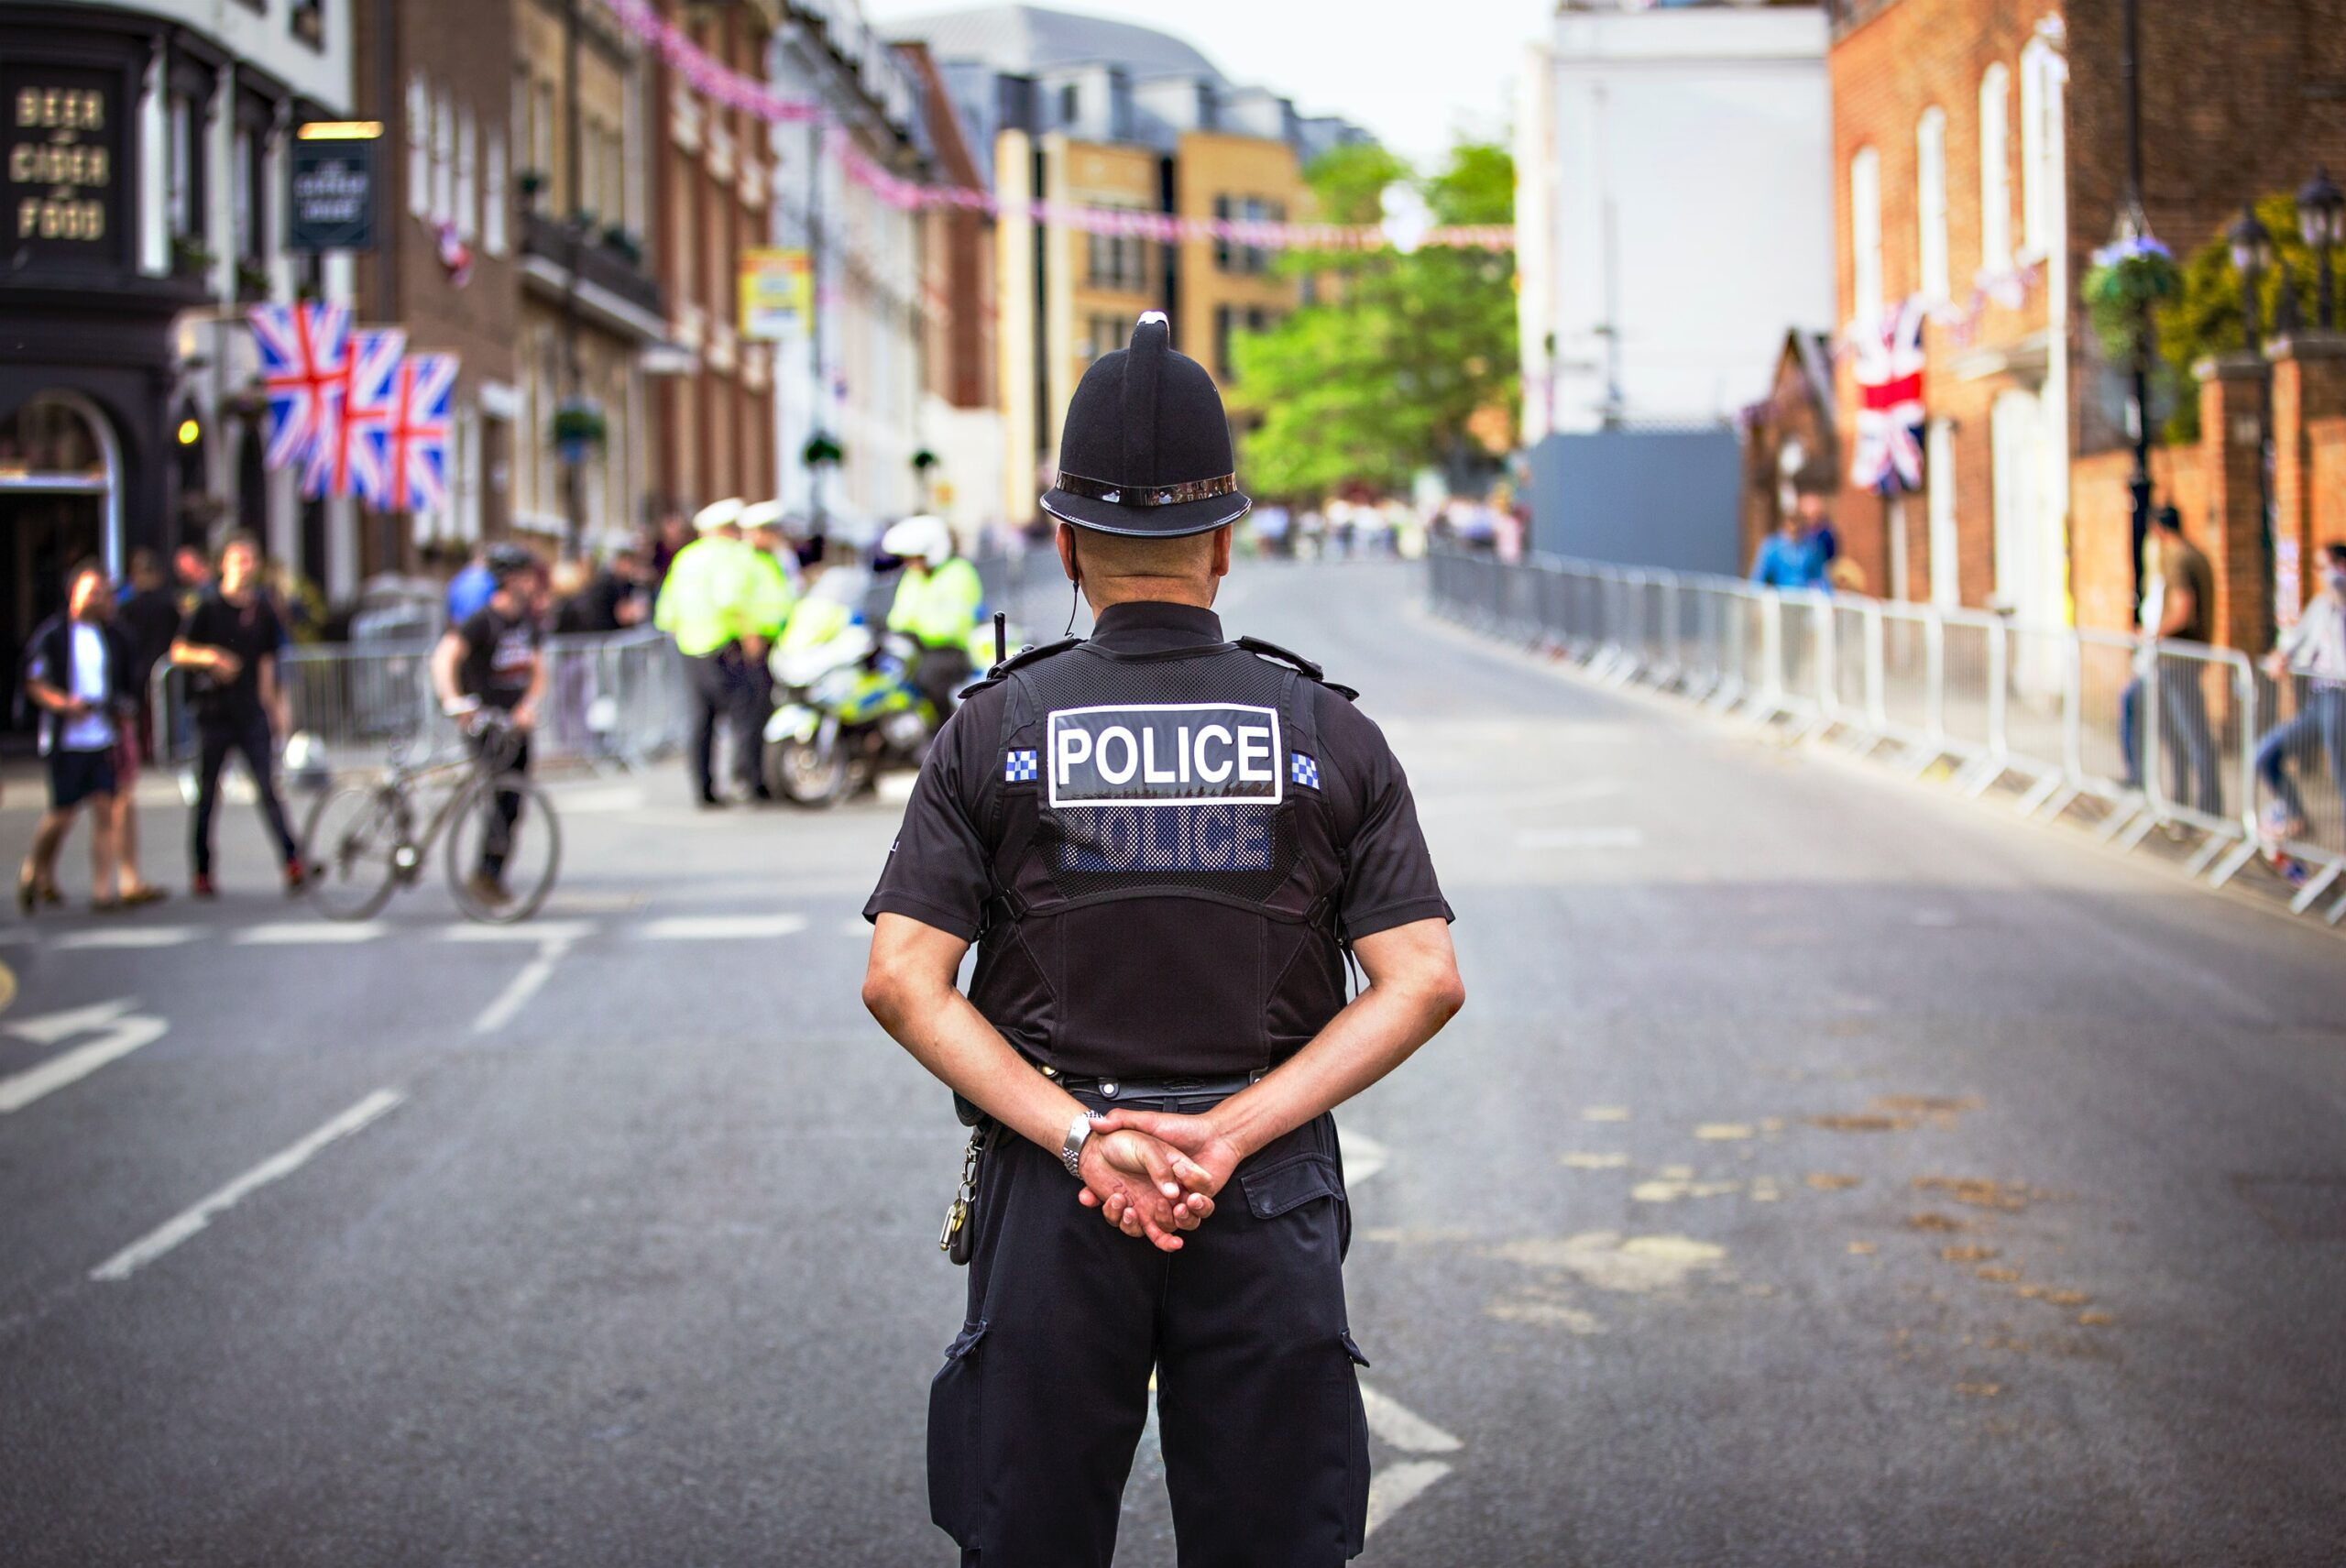 £8.4M Dedicated to Reduce Crime and Support Victims in West Yorkshire